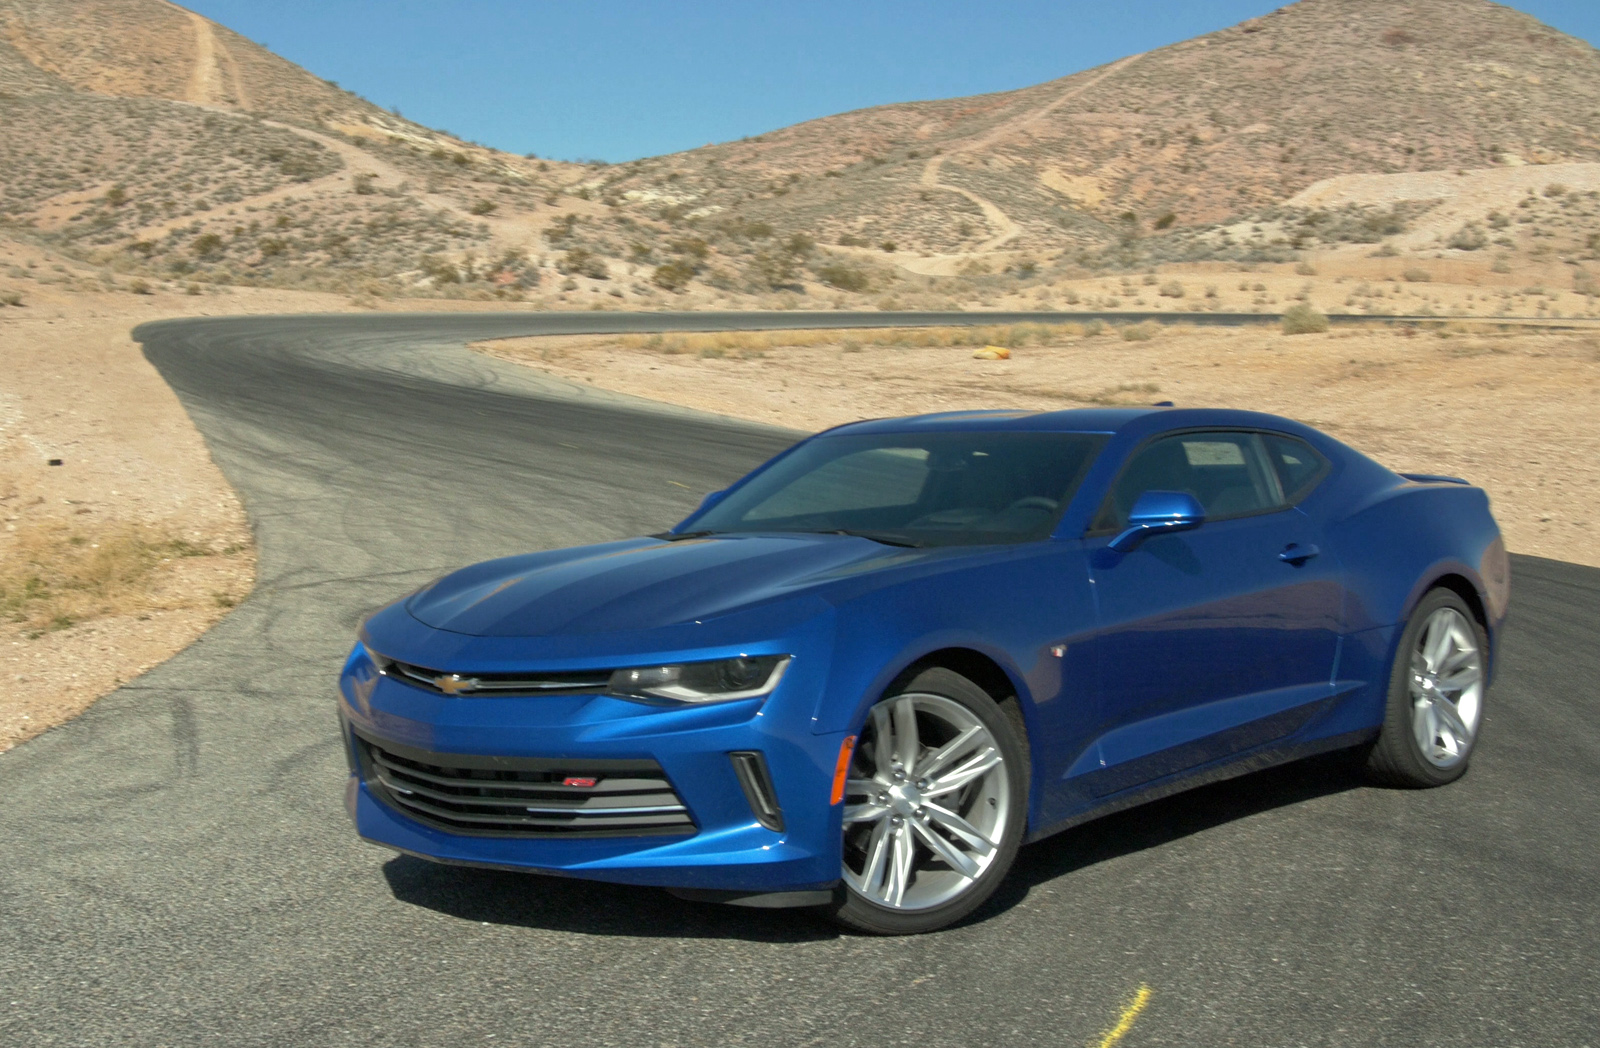 Chevrolet Camaro 2016 Car Of The Year